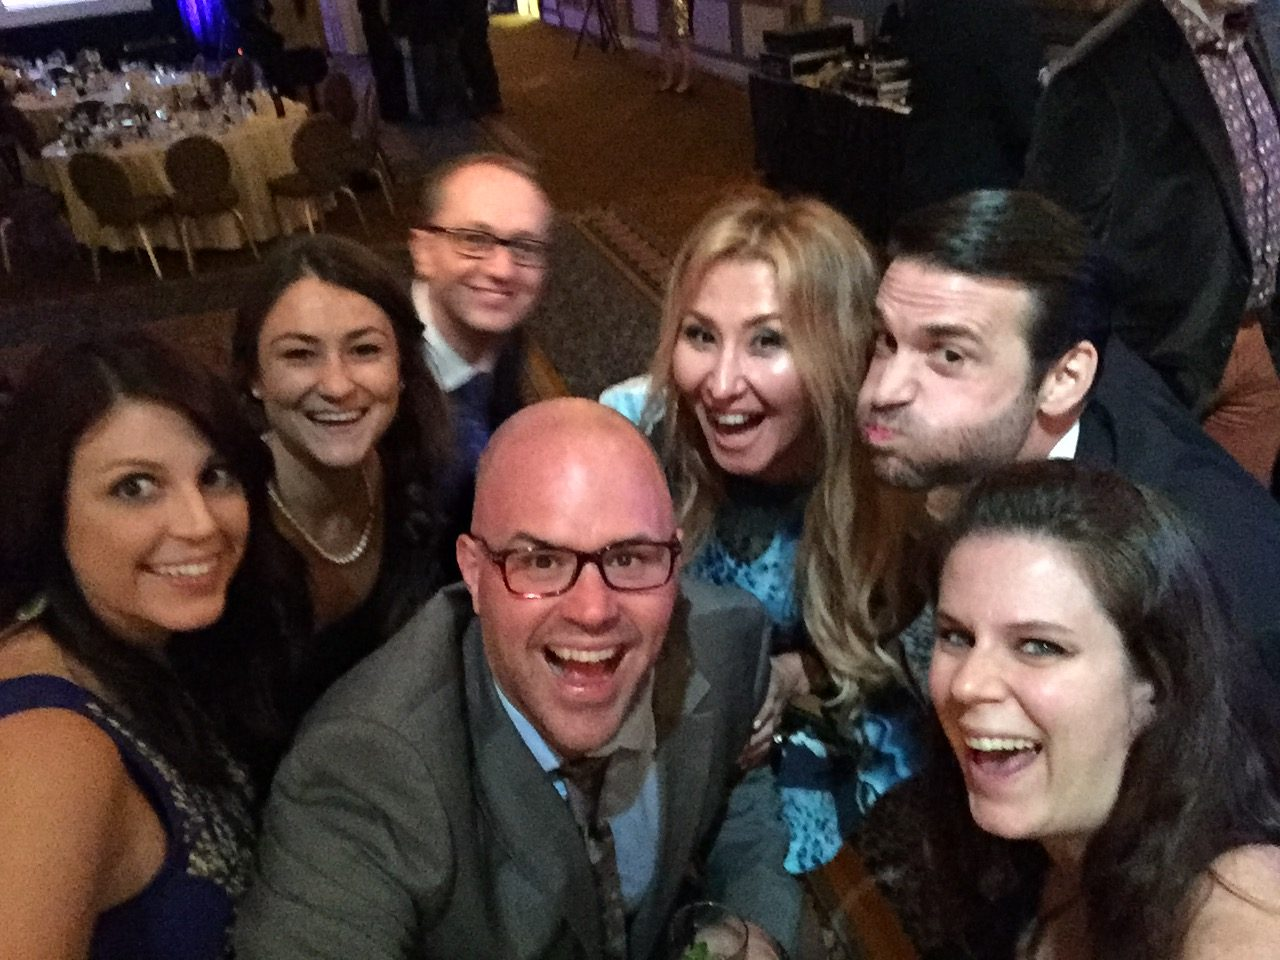 US Search awards selfie